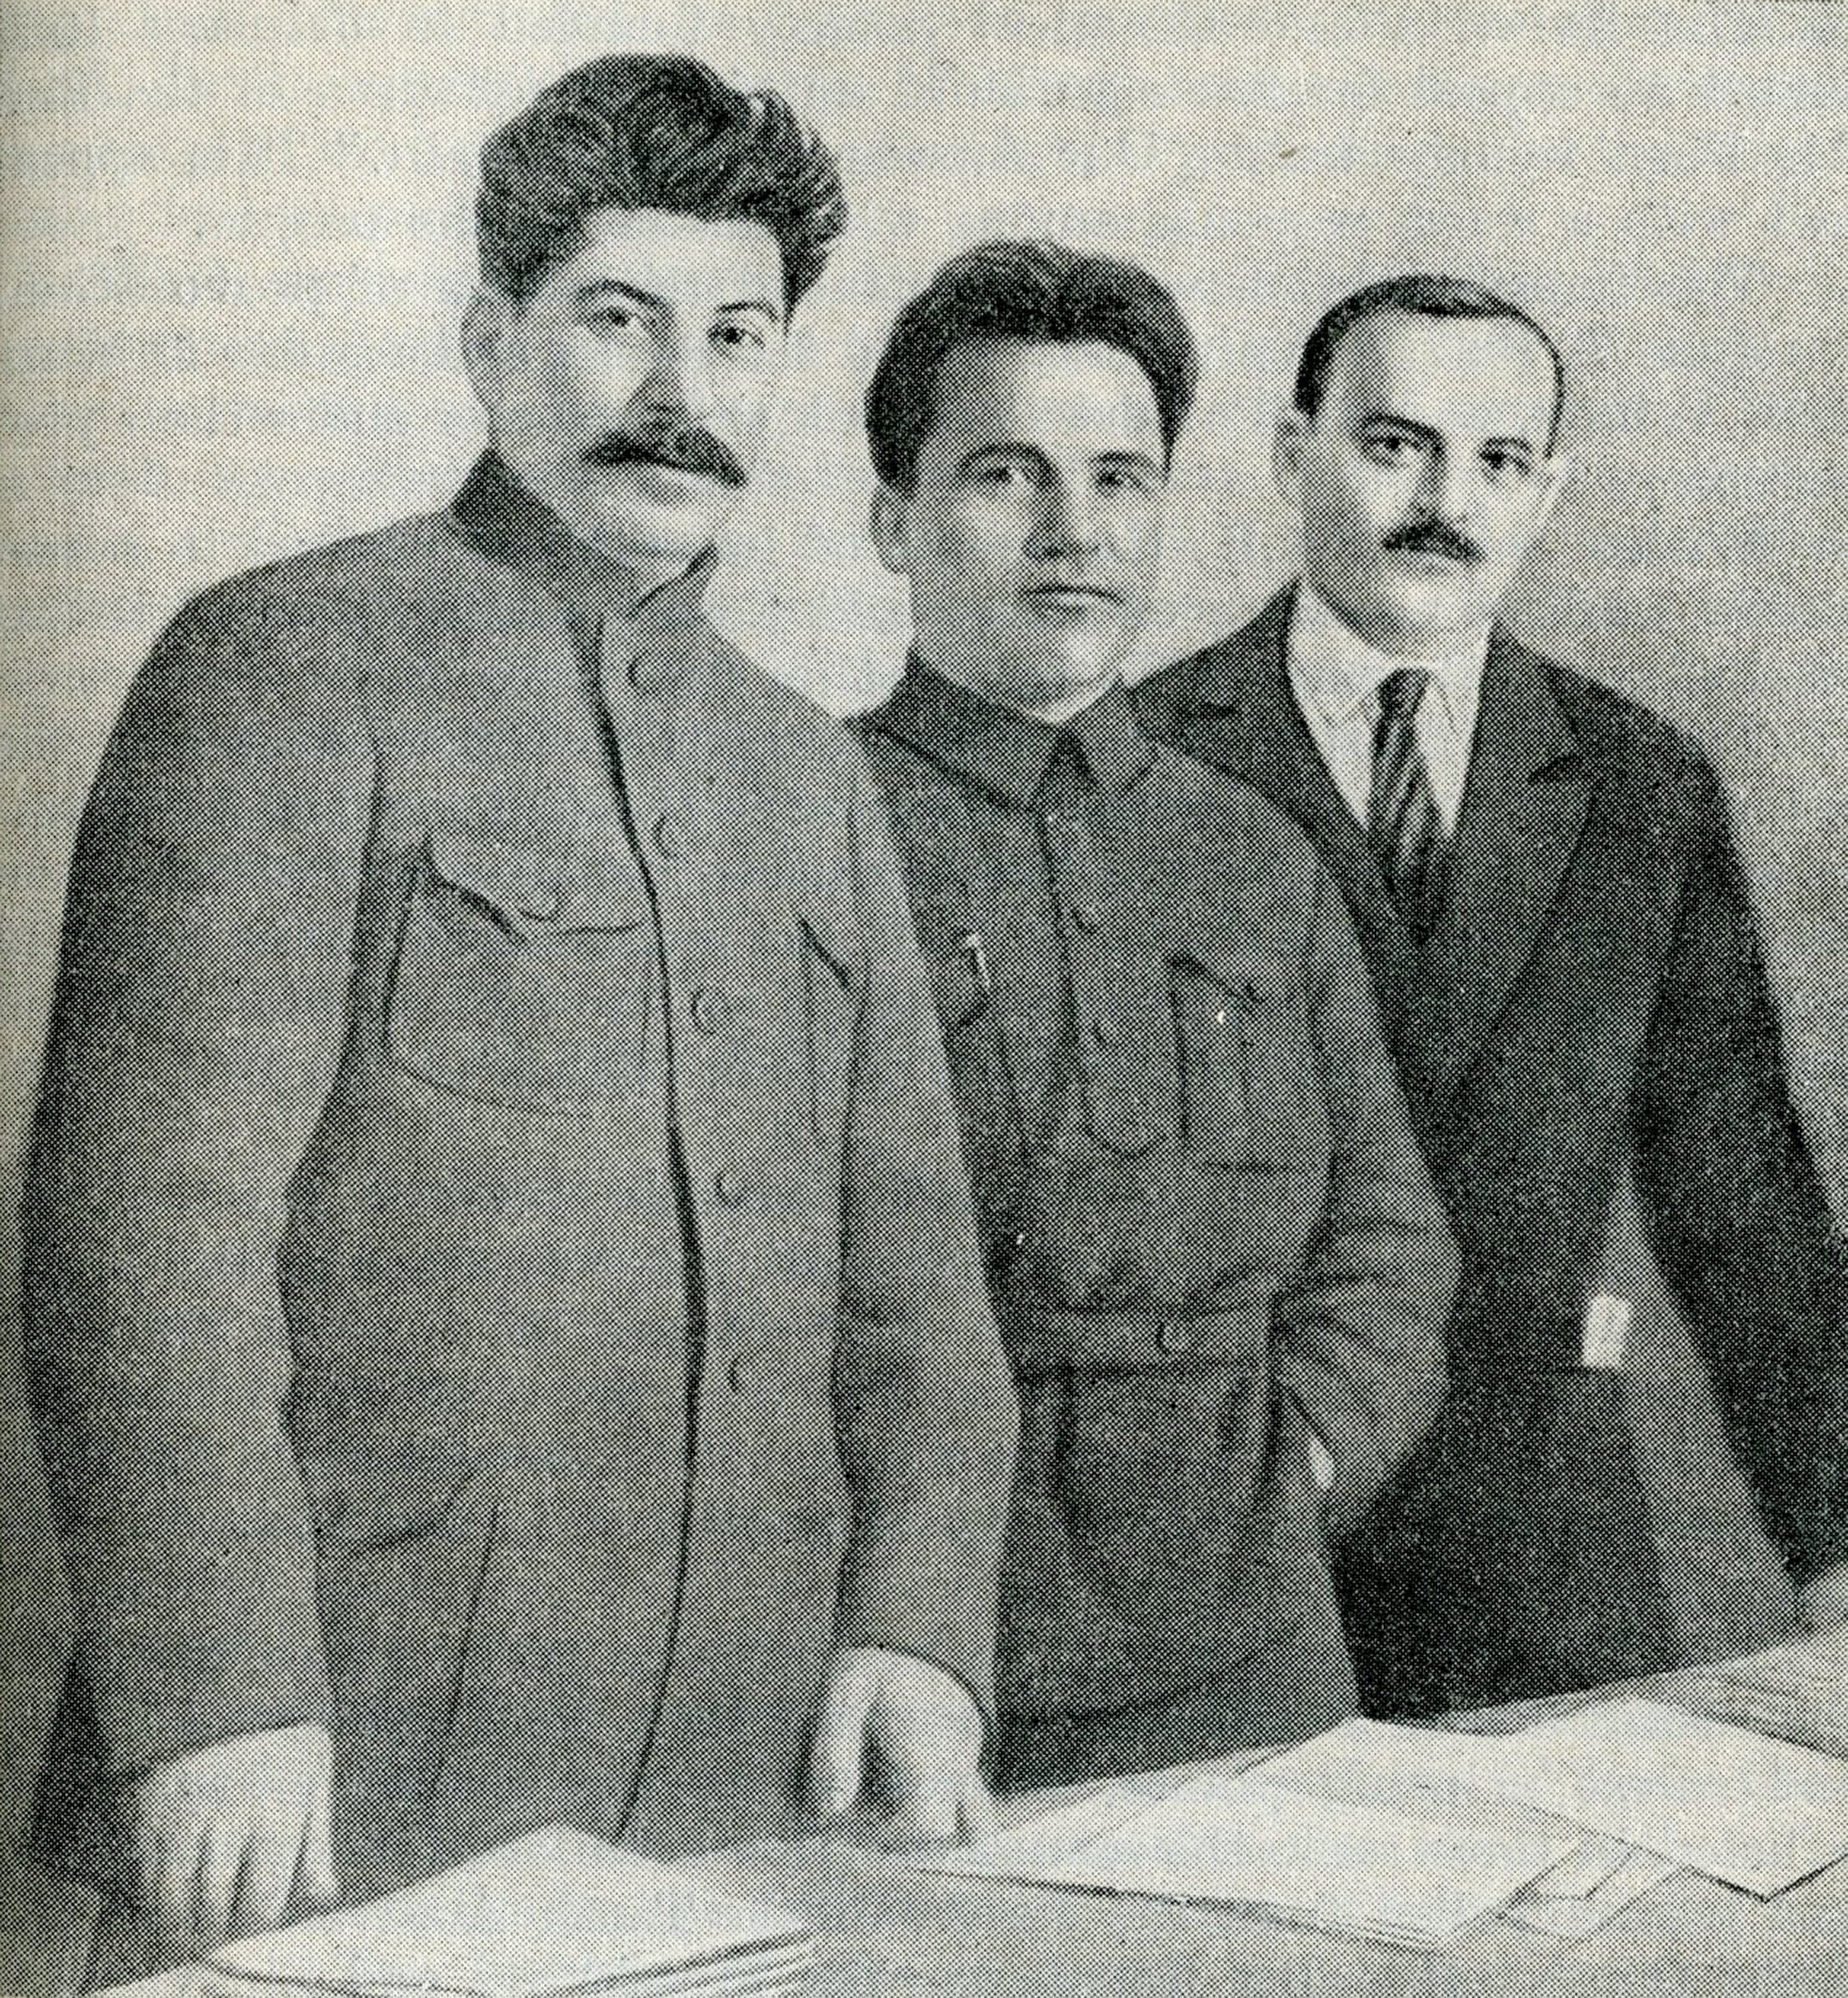 Joseph Stalin, Sergey Kirov and Nikolay Shvernik, 1926, published in A History of the U.S.S.R., Part 3 (Moscow, 1948)